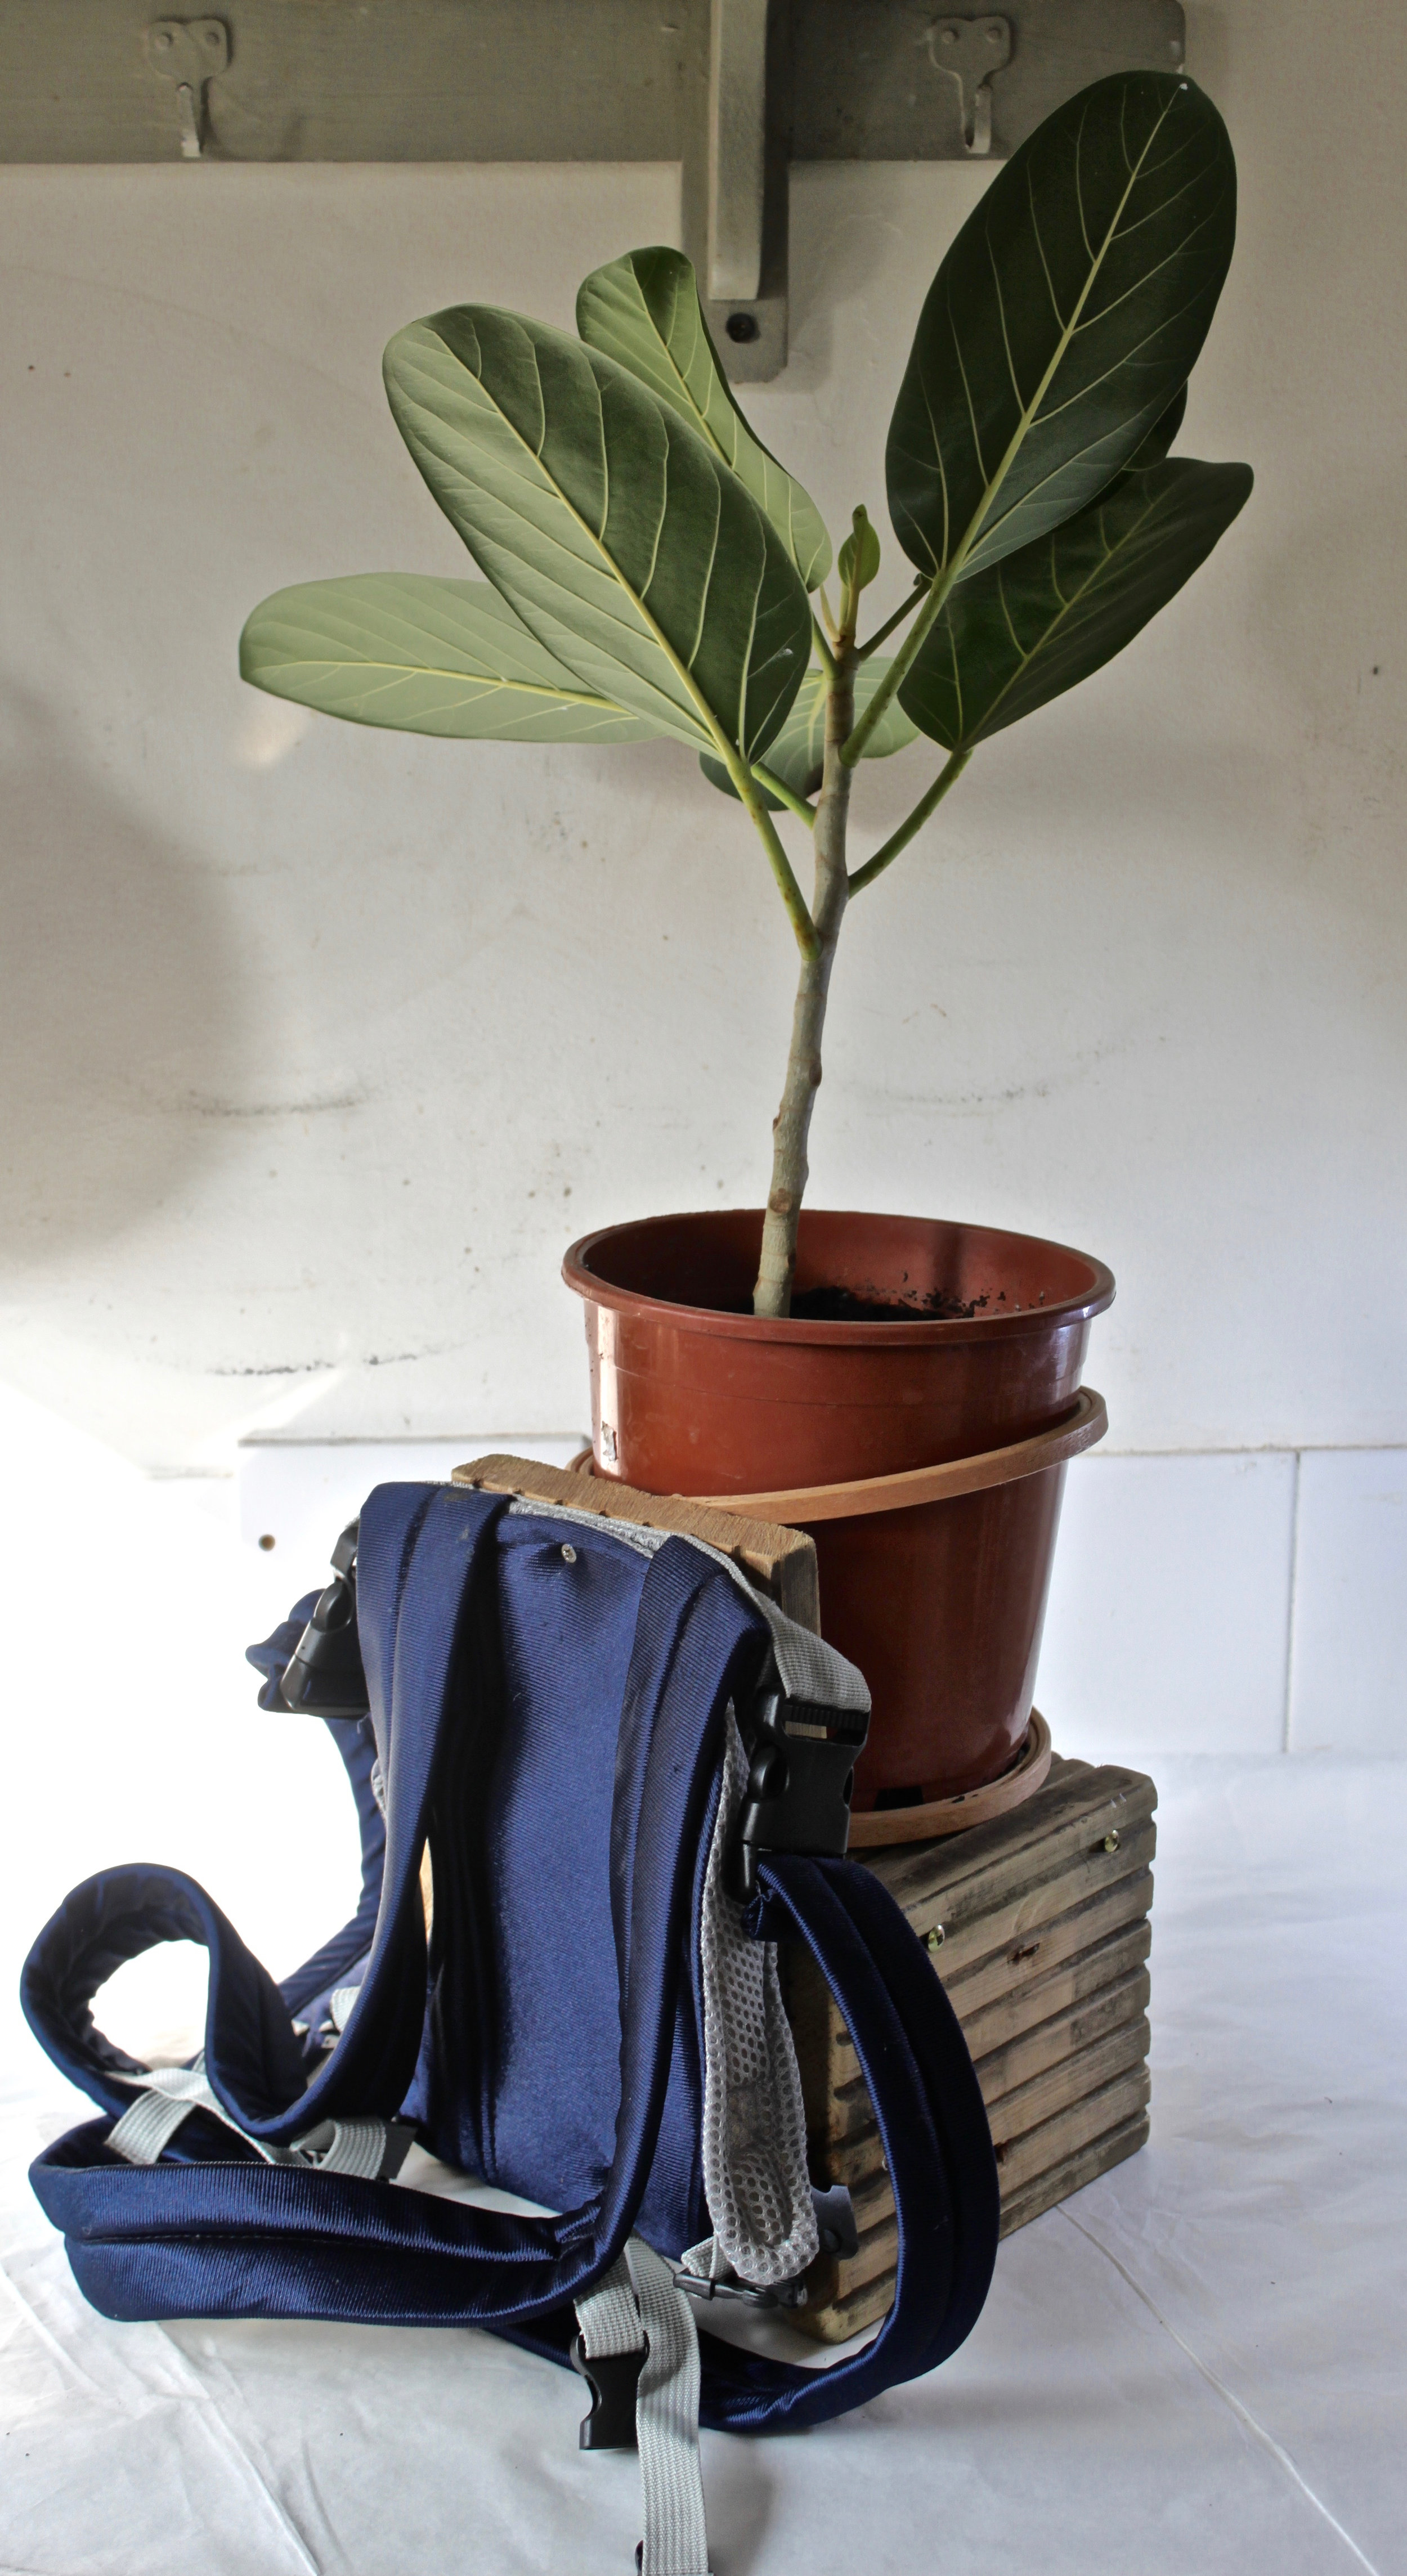 Plant Hugger, useful for wearing in overly crowded situations for grounding and a sense of calm. Particularly successful when wearing aromatic plants such as Lavender.